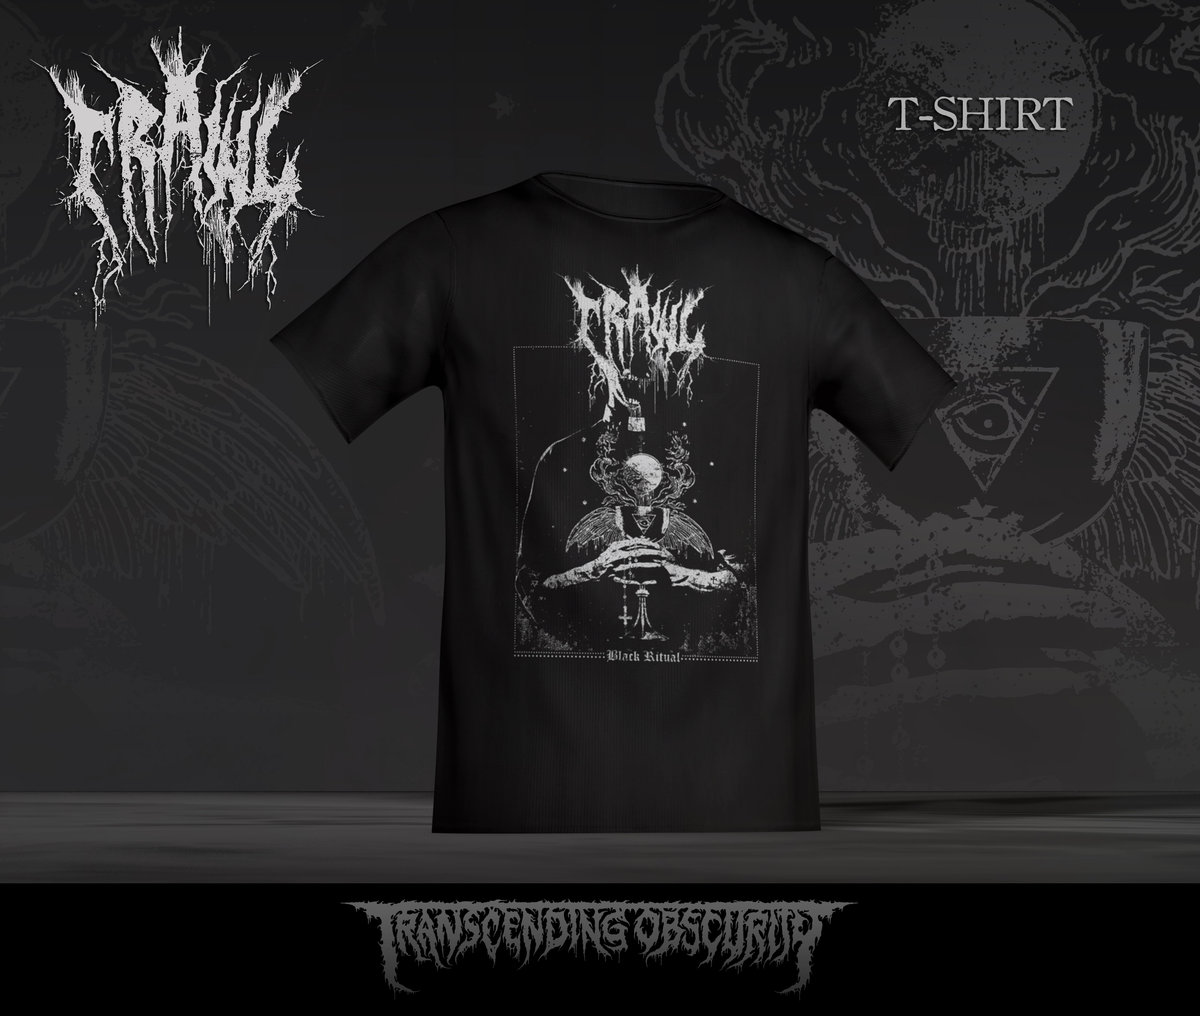 CRAWL - Death To Chvrch T-shirt (Limited to 25)